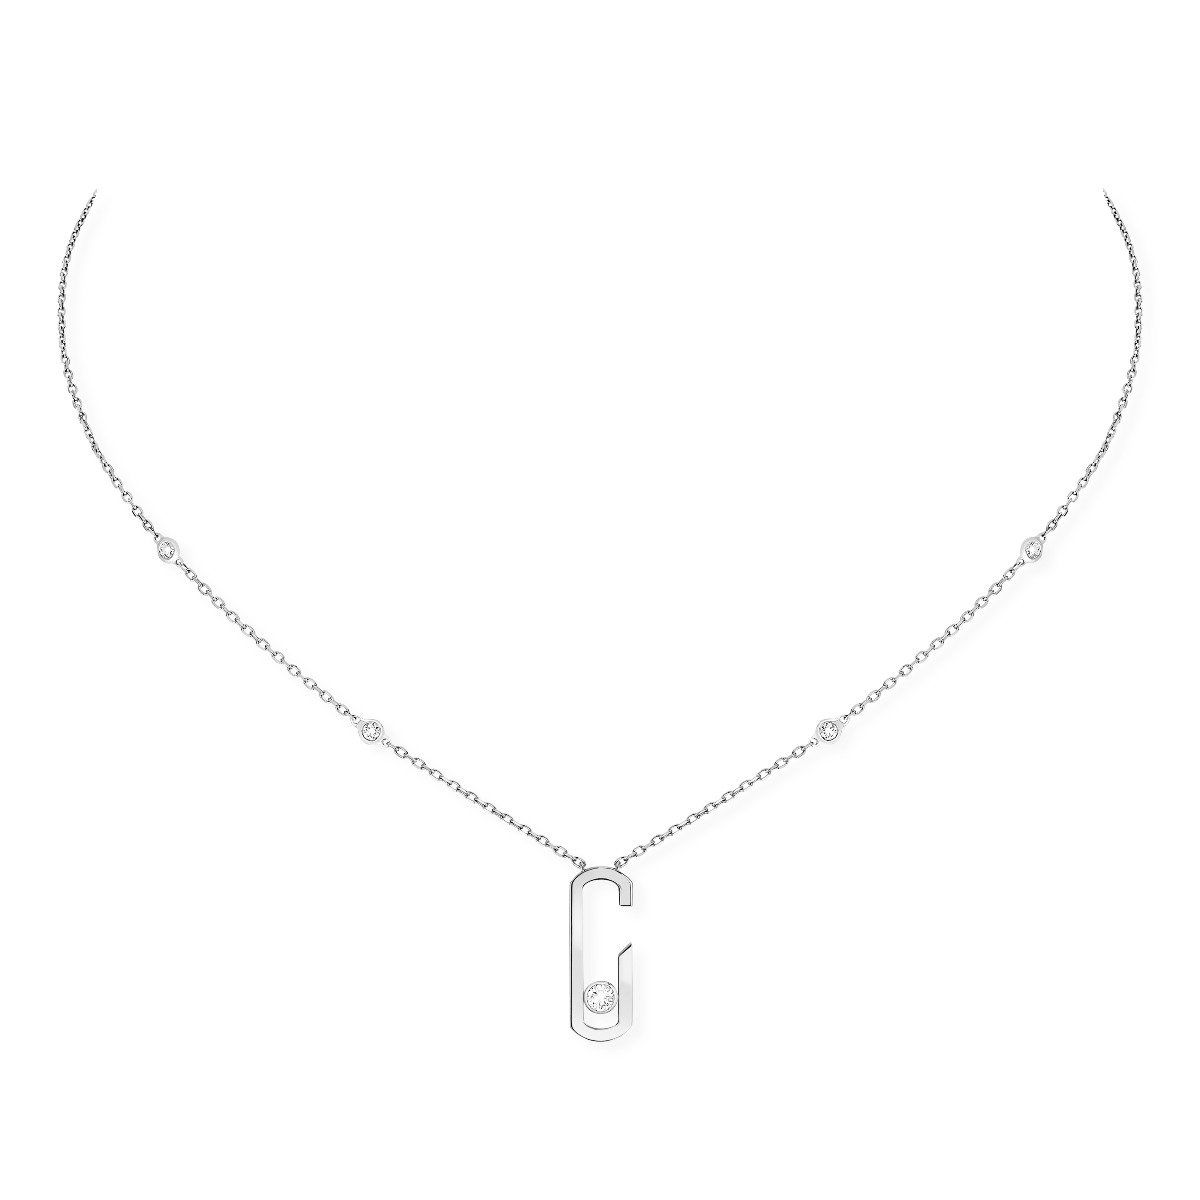 Move Addiction Necklace - White Gold